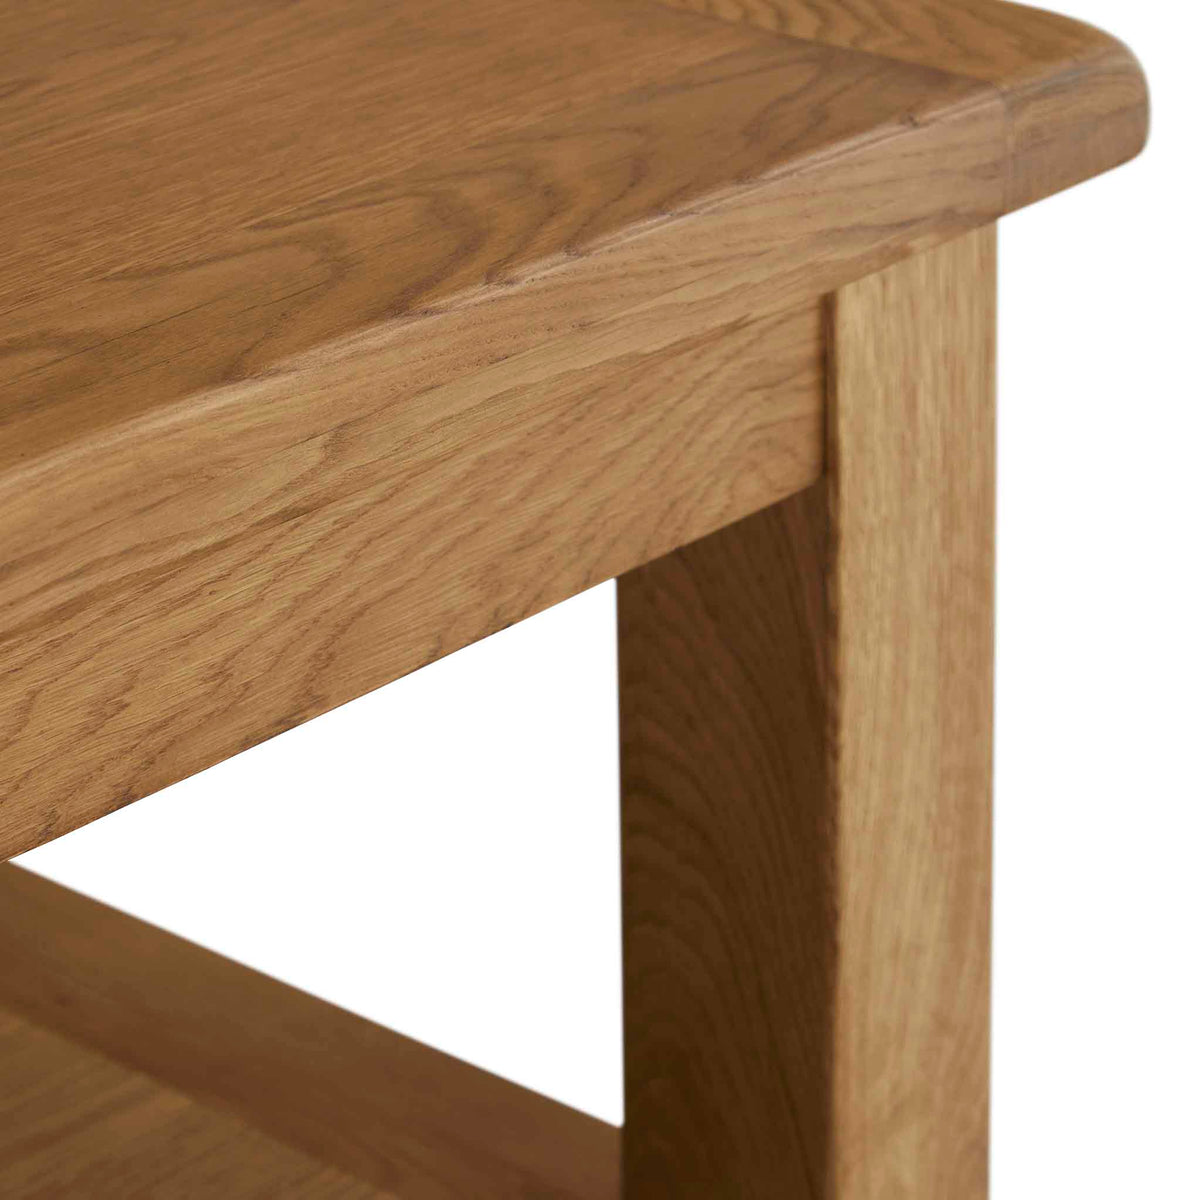 Zelah Oak Large Coffee Table - Close up of corner of table